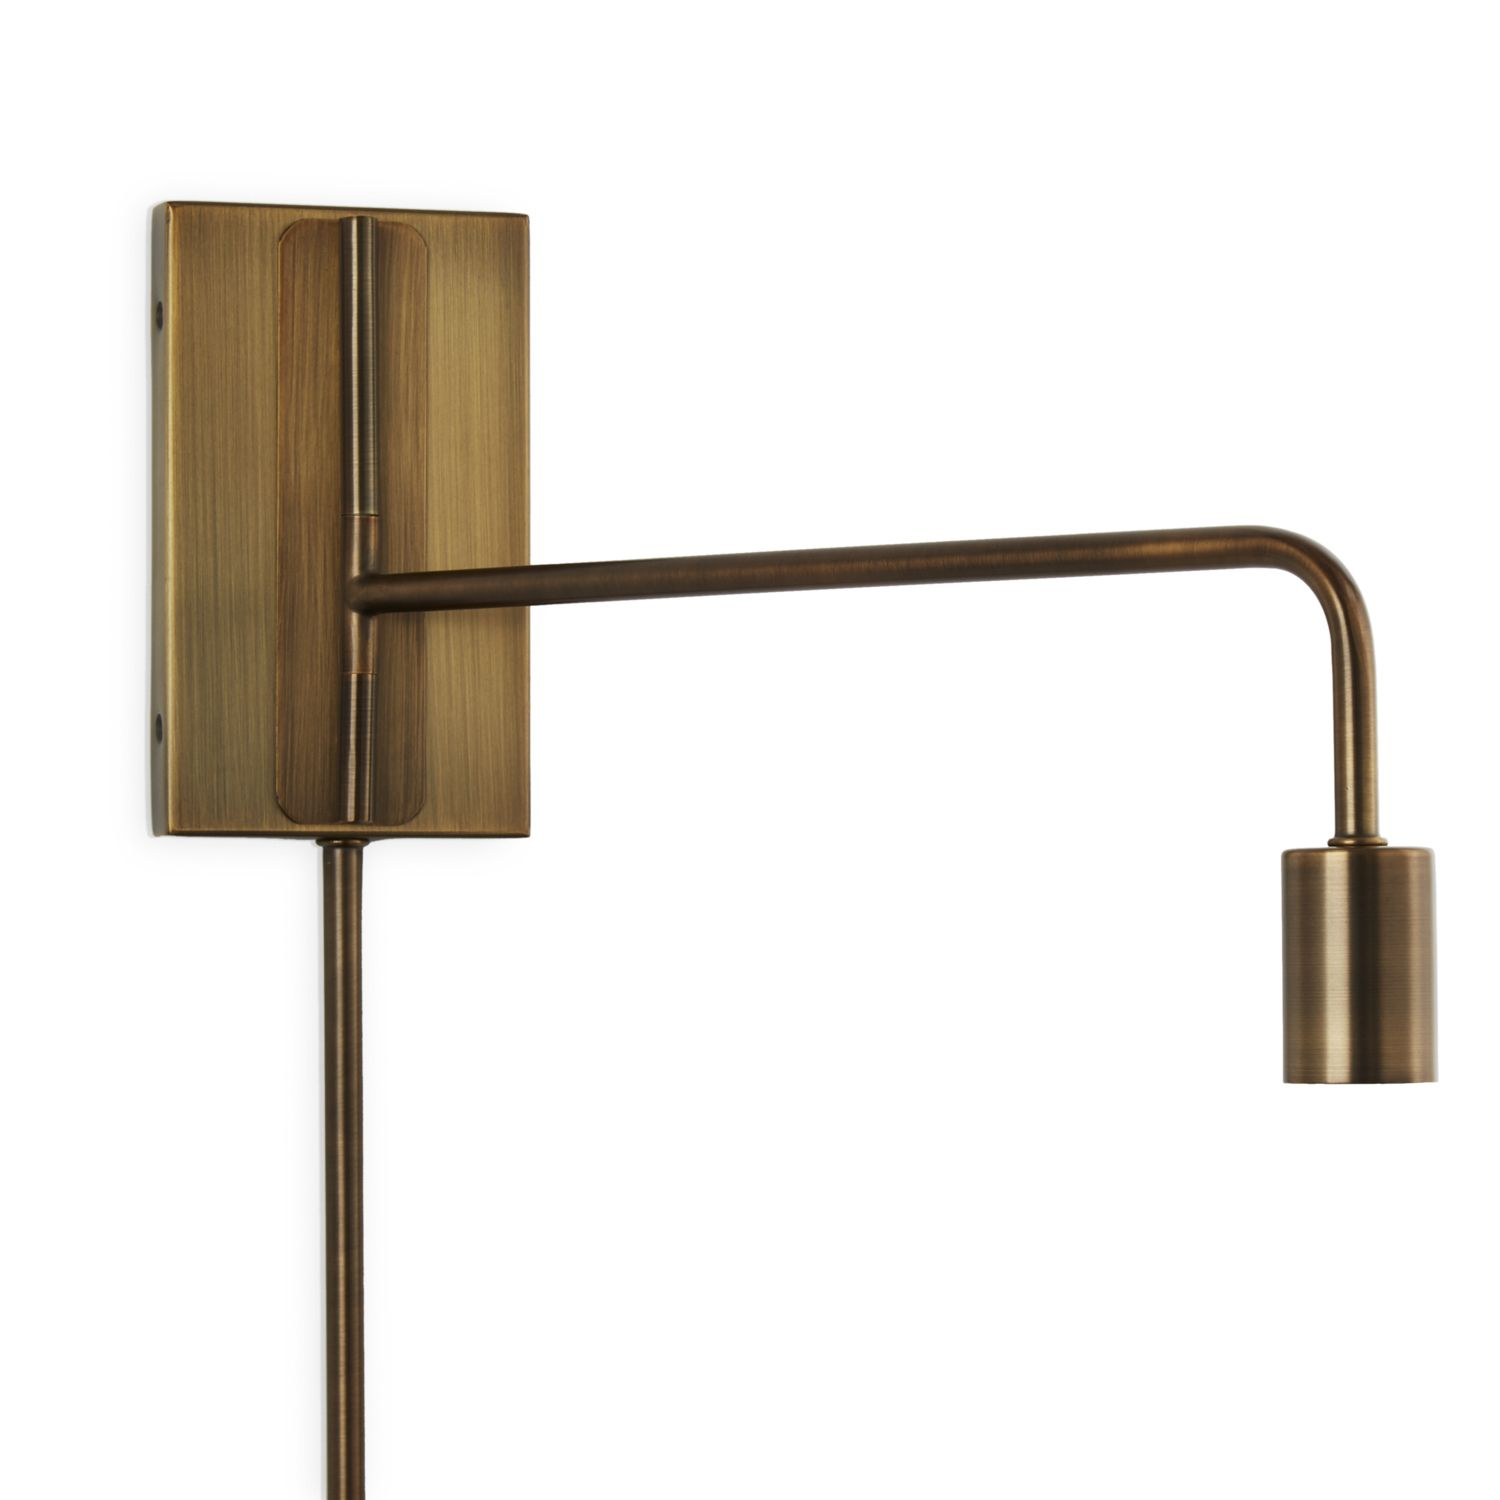 polished candle my diy sconces baldwin parker simply wall simple williamsburg b fabulous brass sconce